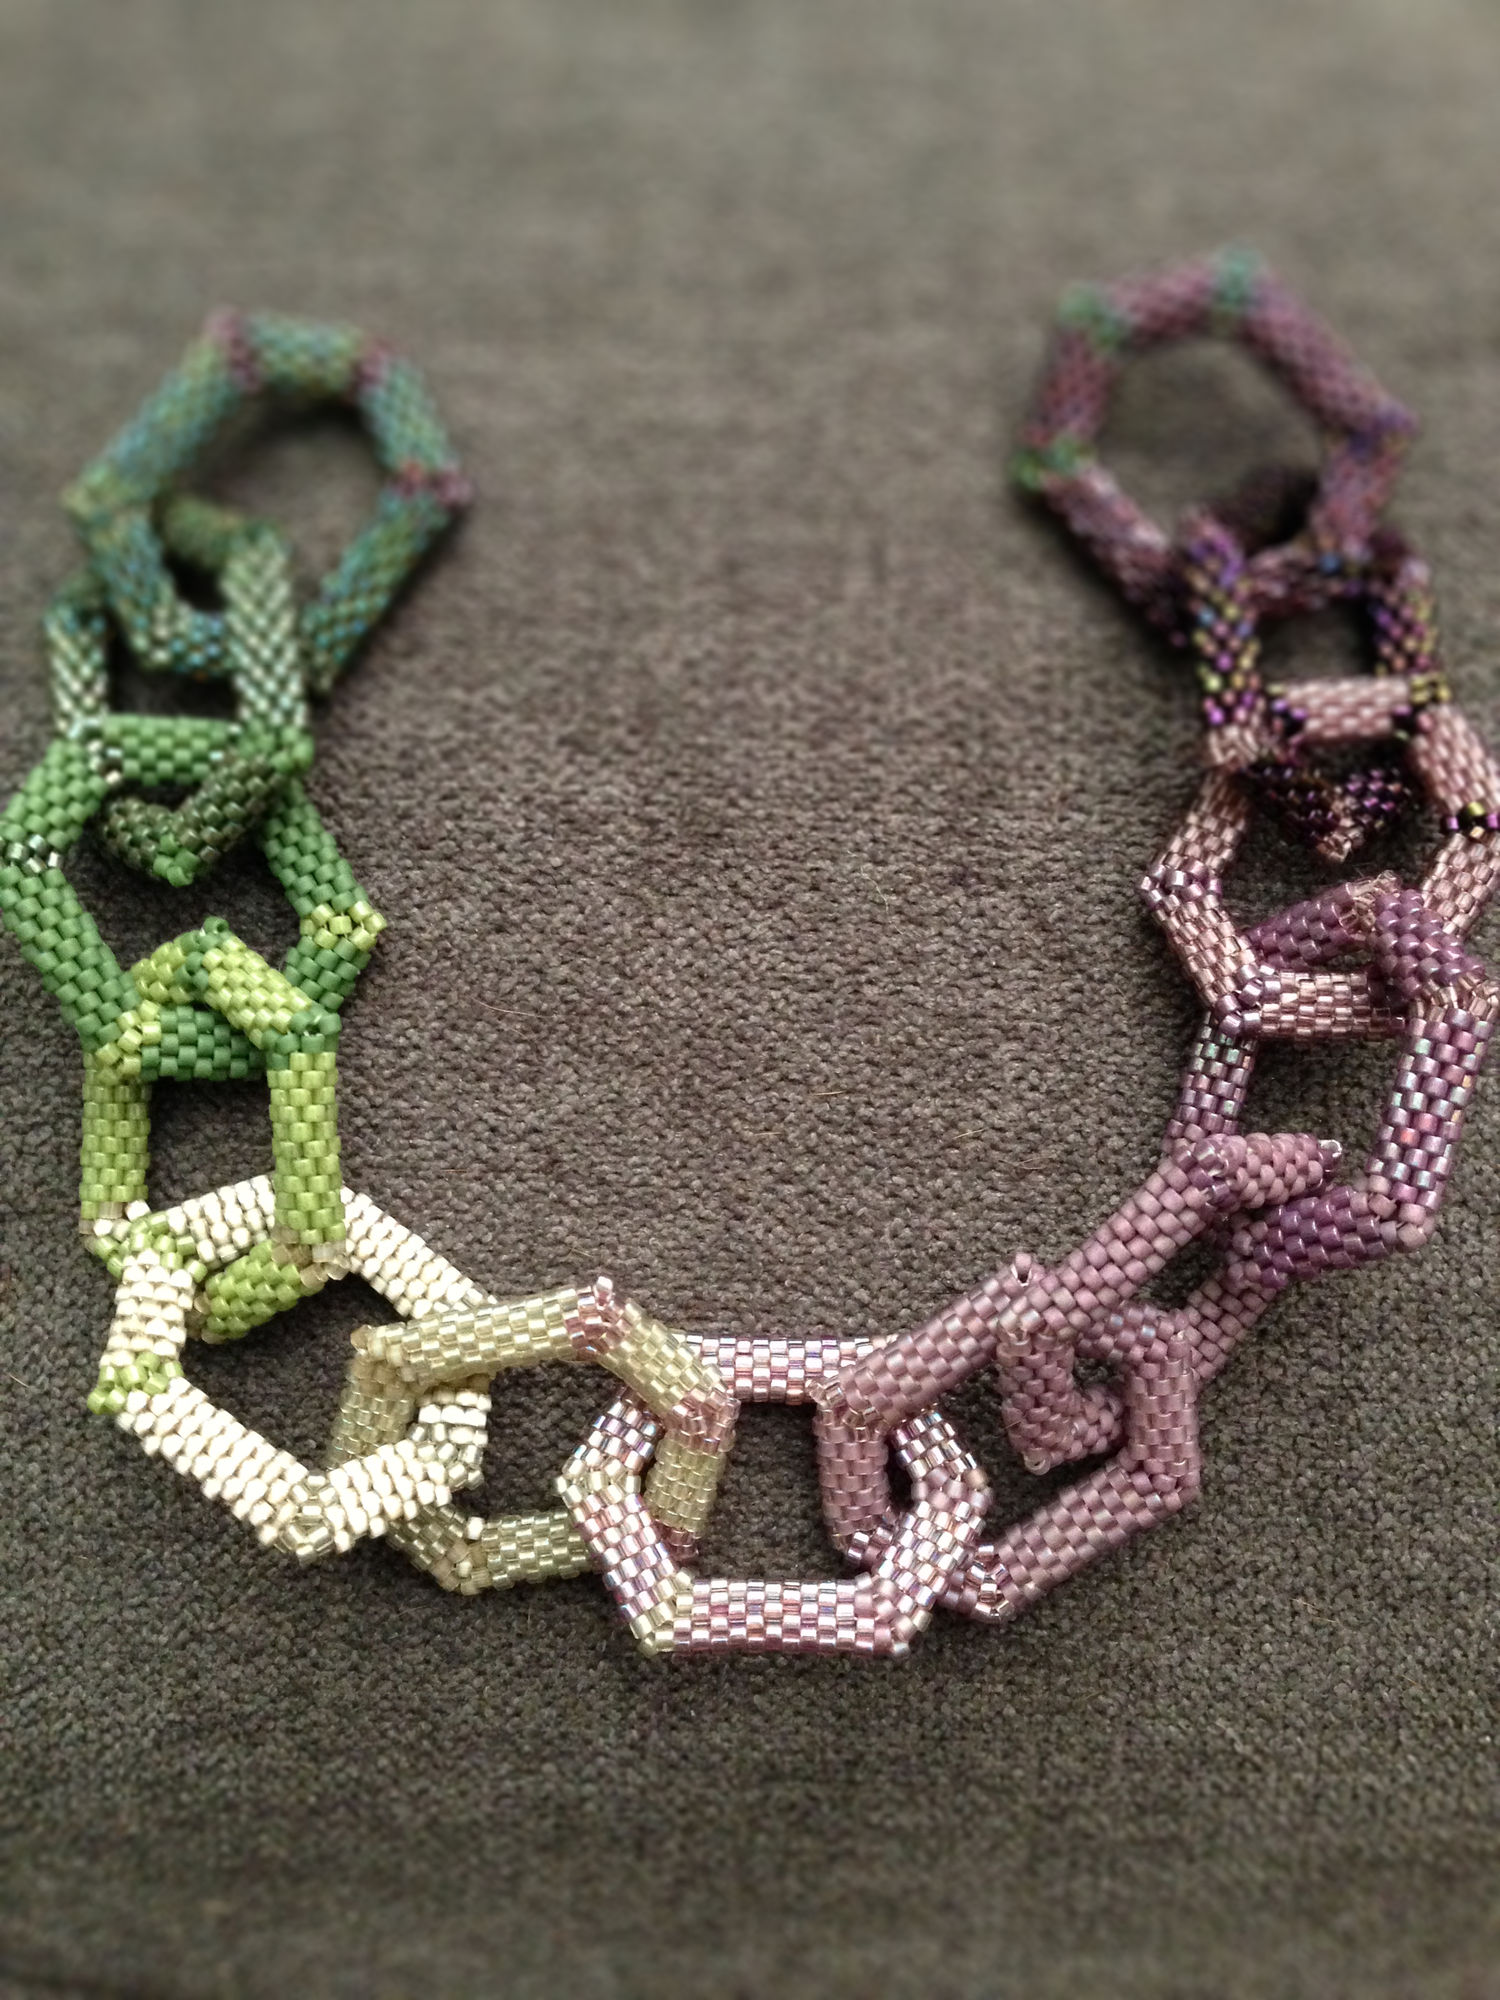 A string of peyote hexagons in a spectrum from dark green to light green to pale silver to lavender to dark purple.